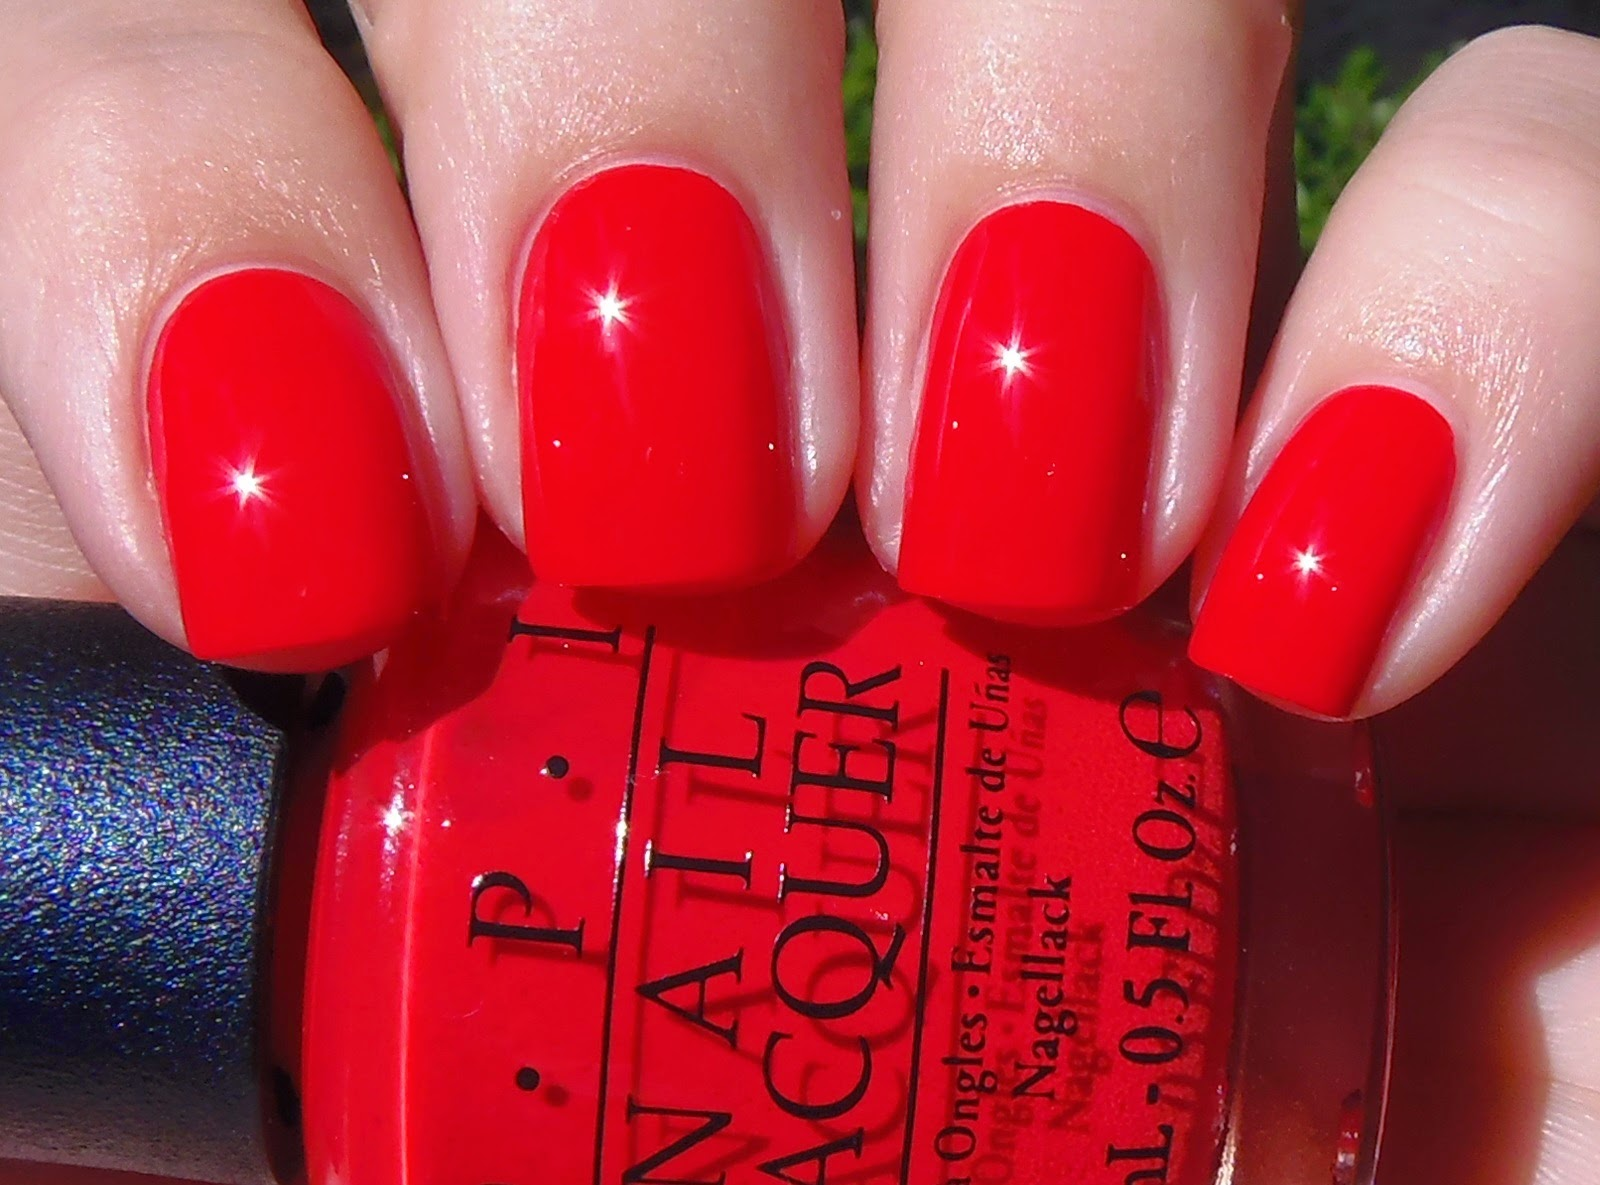 Also Opi Has A Cocoa Cola Red That Is Beautiful The 50 S E Vibe